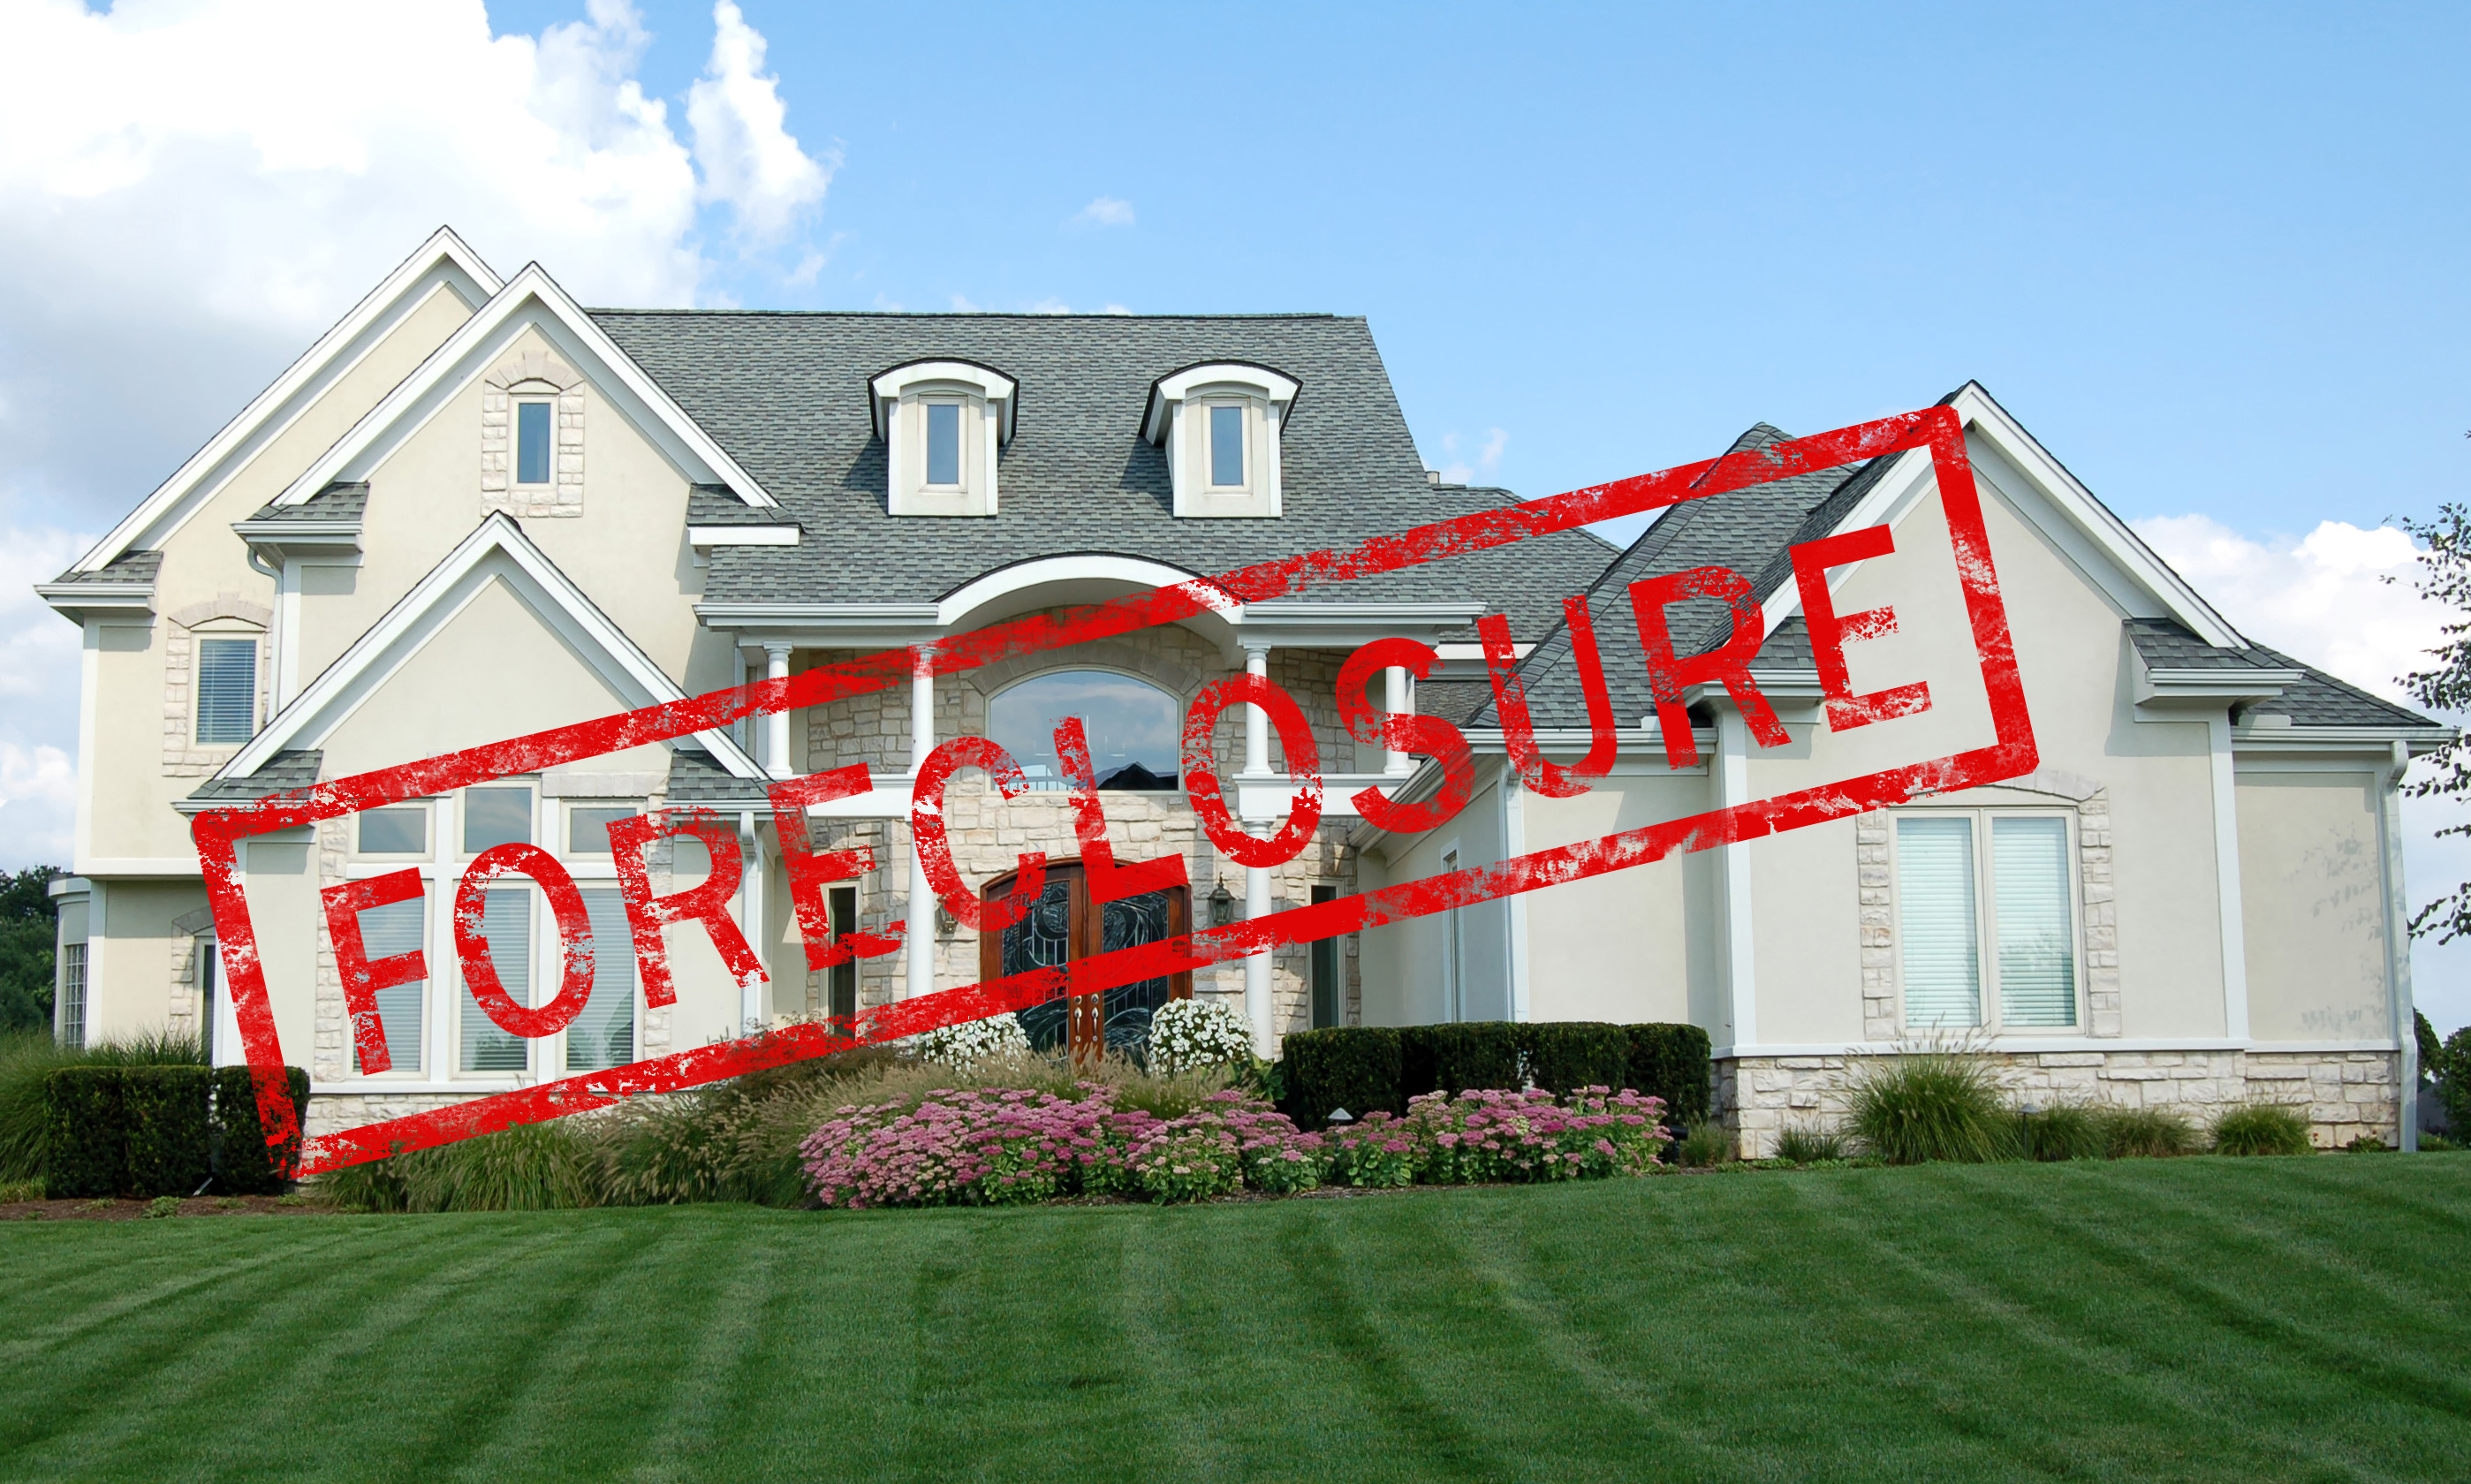 Call Anderson Appraisal, LLC to discuss appraisals of Randall foreclosures